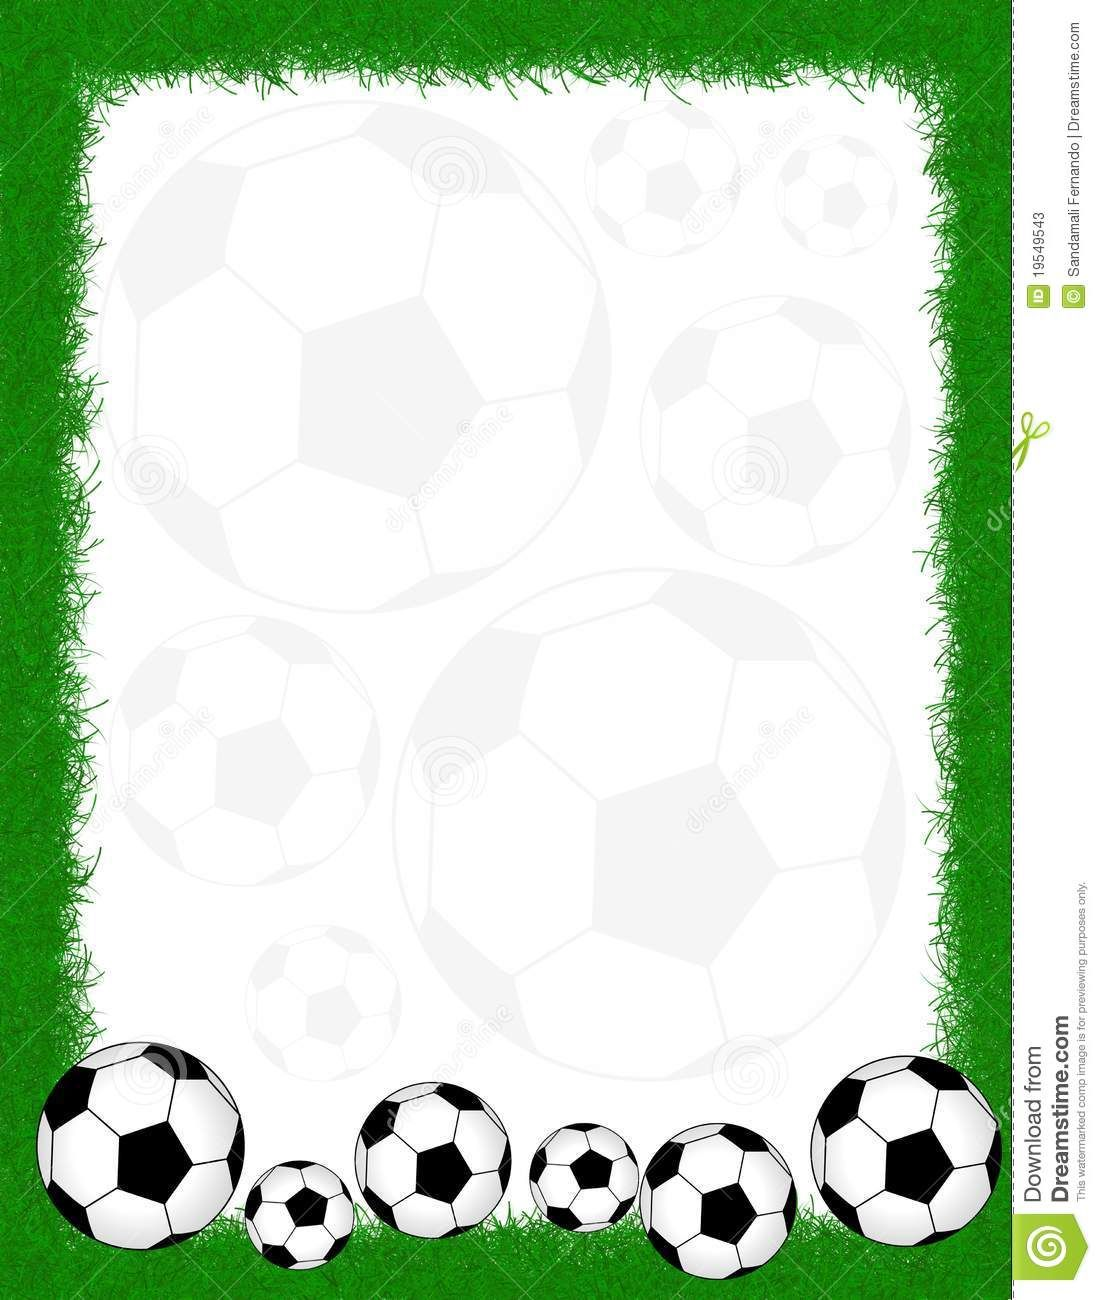 1101x1300 Football Borders And Frames Soccer Frame Border 19549543.jpg (1101